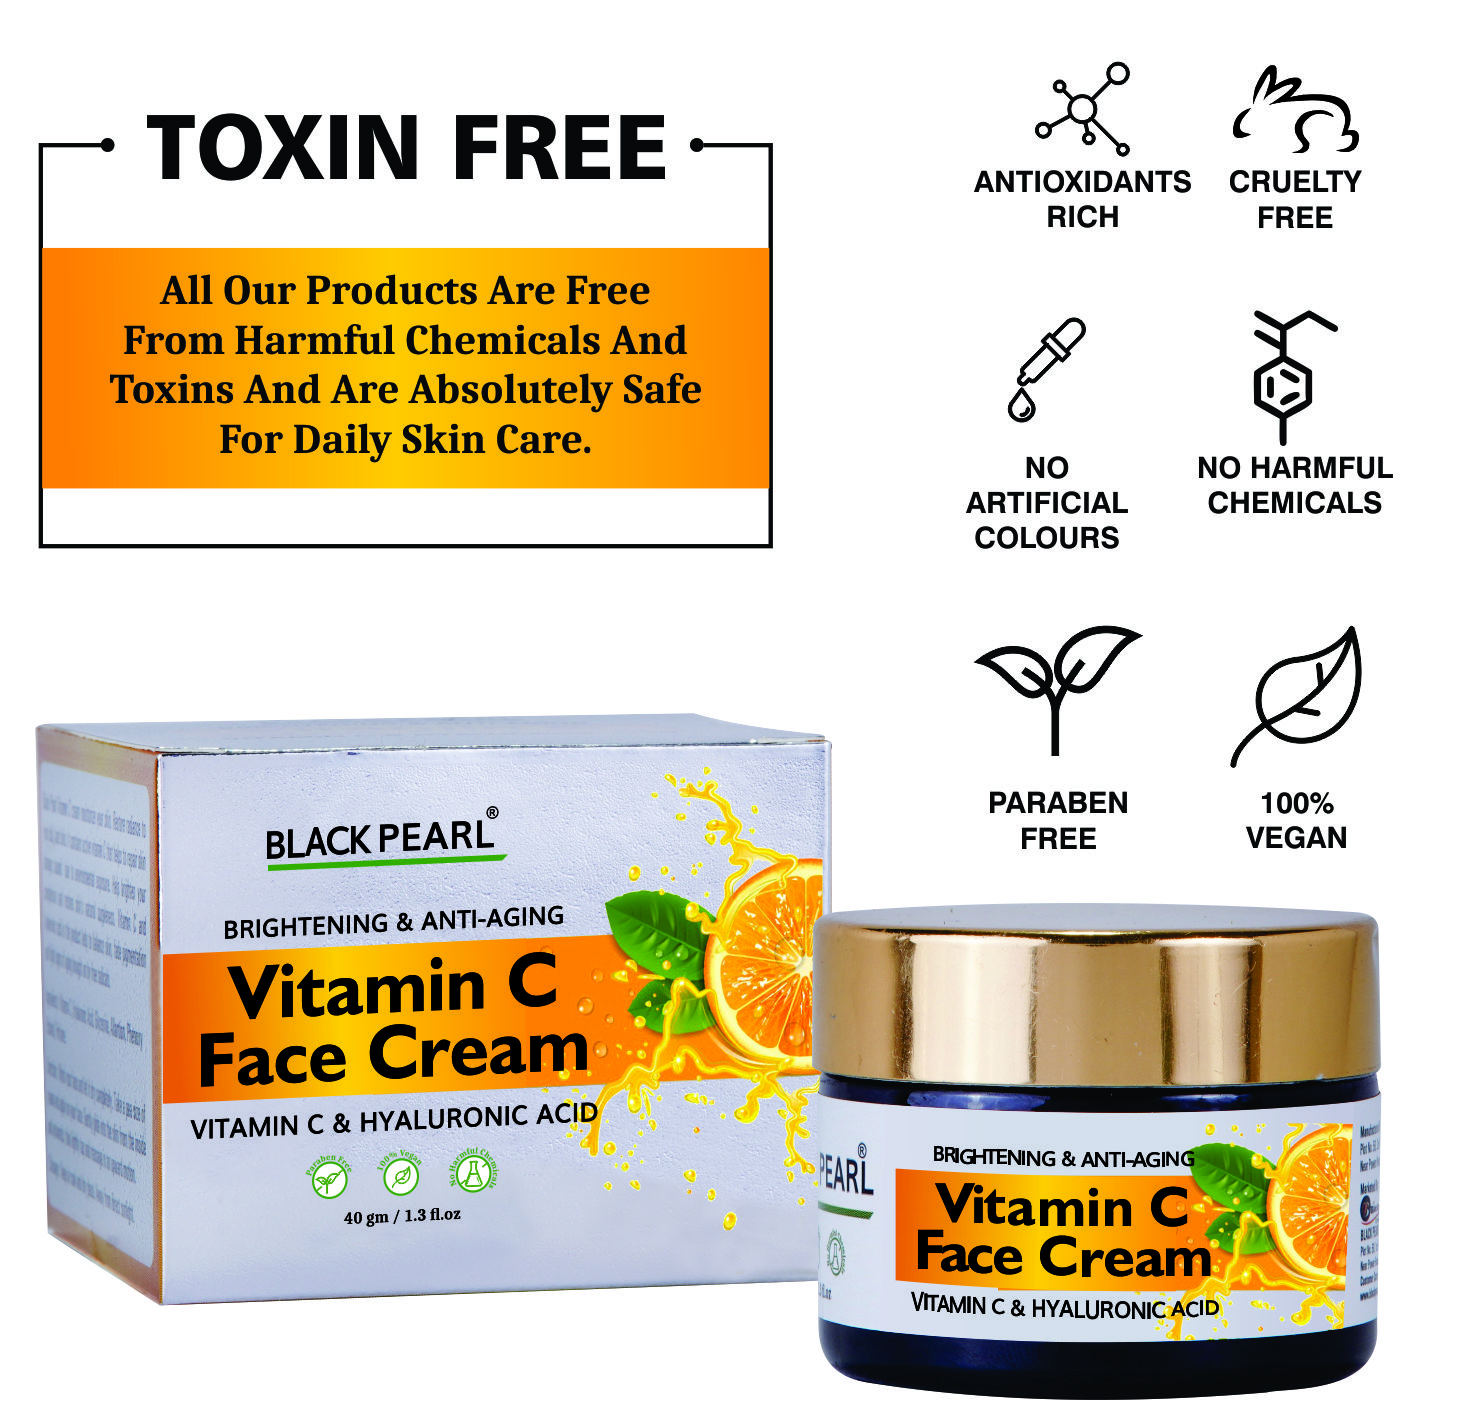 Cosmetic Cream Manufacturer Toxin Free